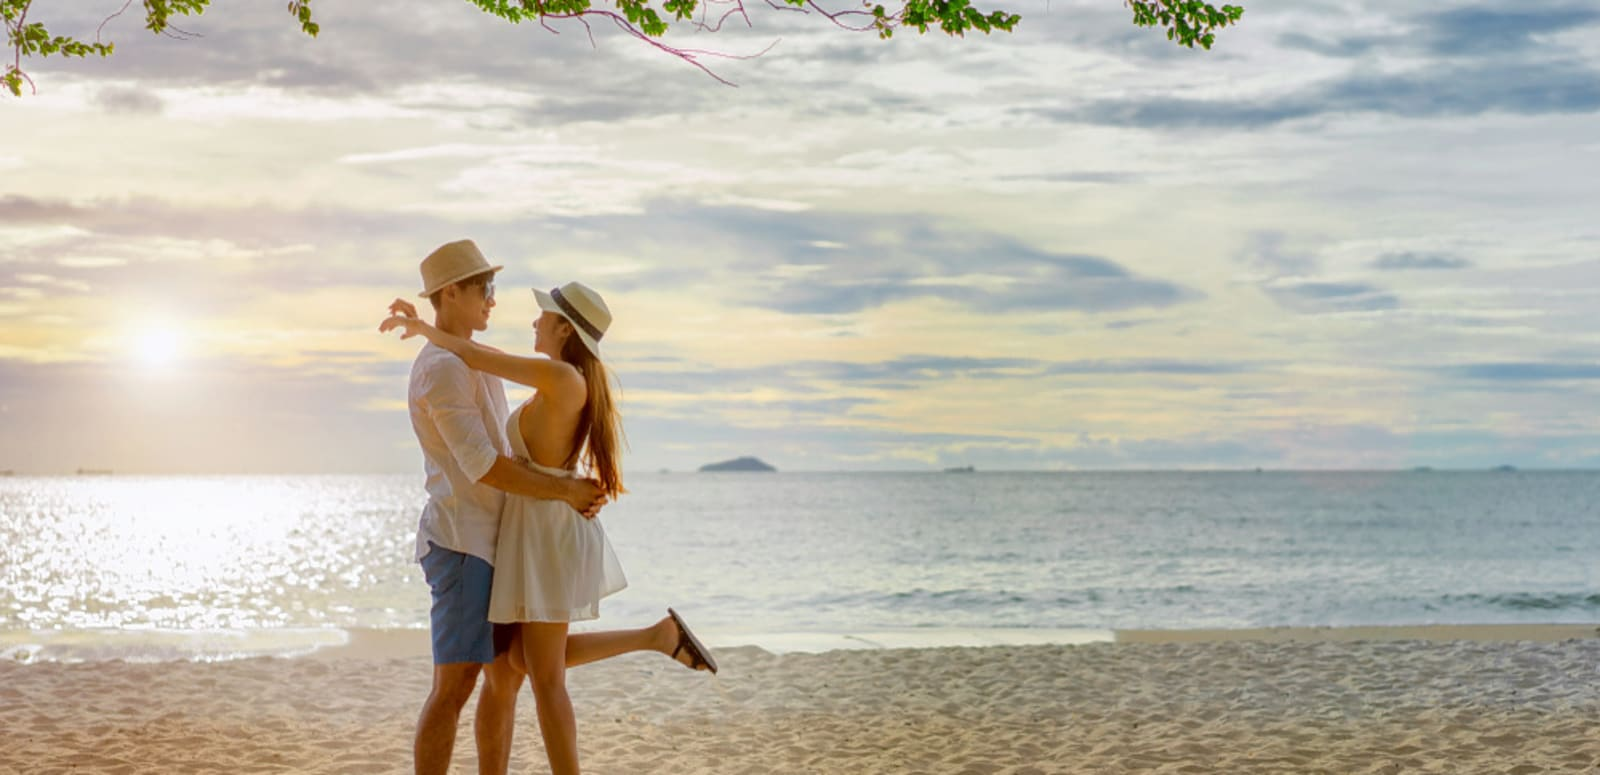 50 Best Thailand Honeymoon Packages - 2019 (4100+ Reviews)